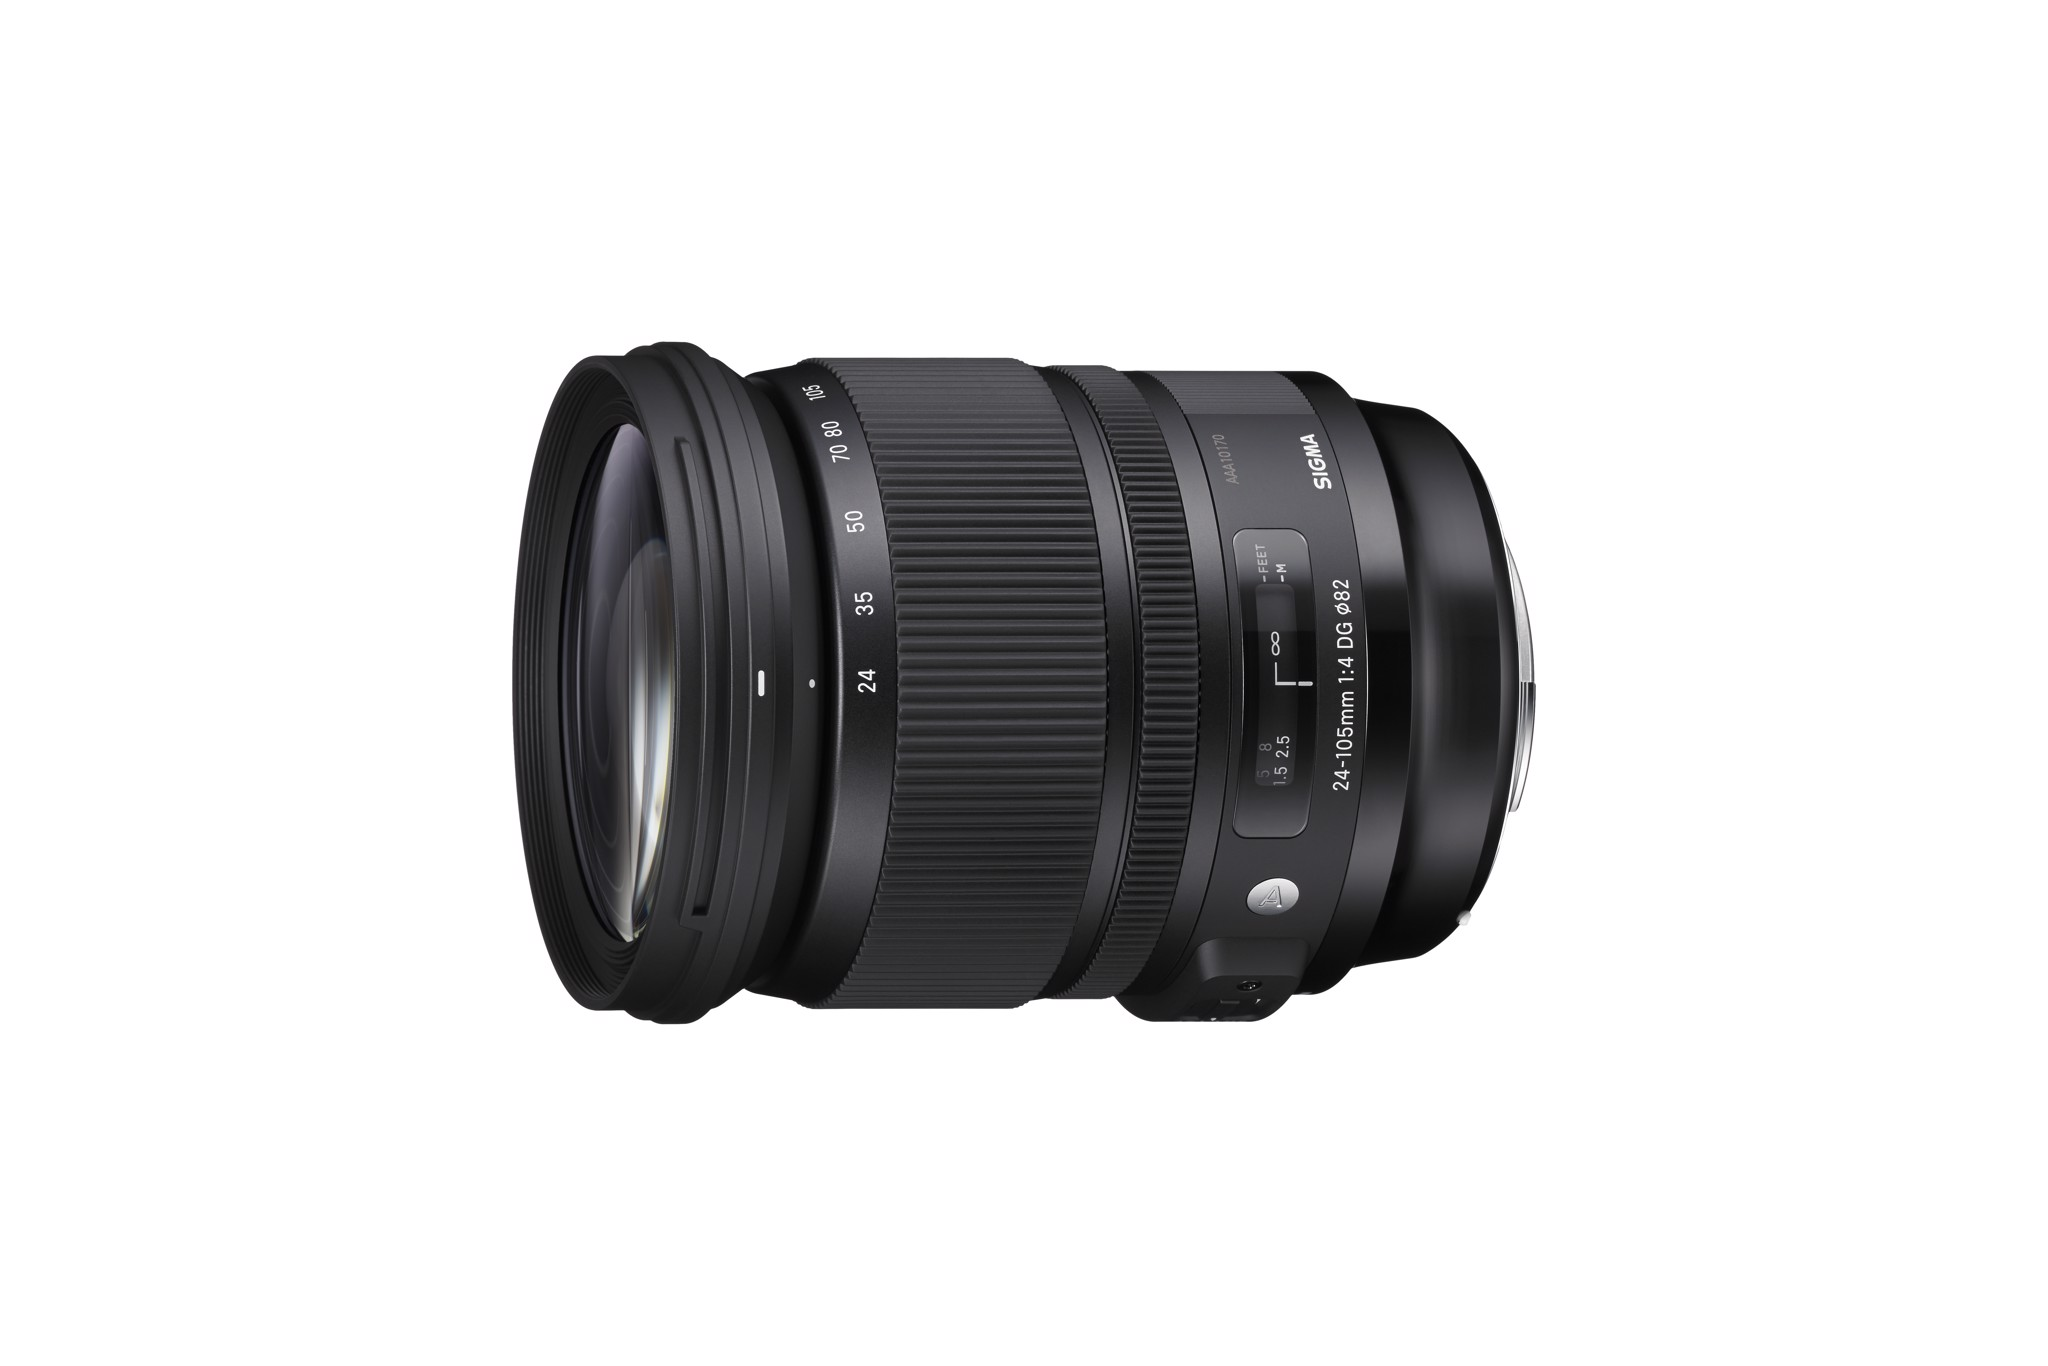 Sigma 24-105mm F4 DG OS HSM (Art)